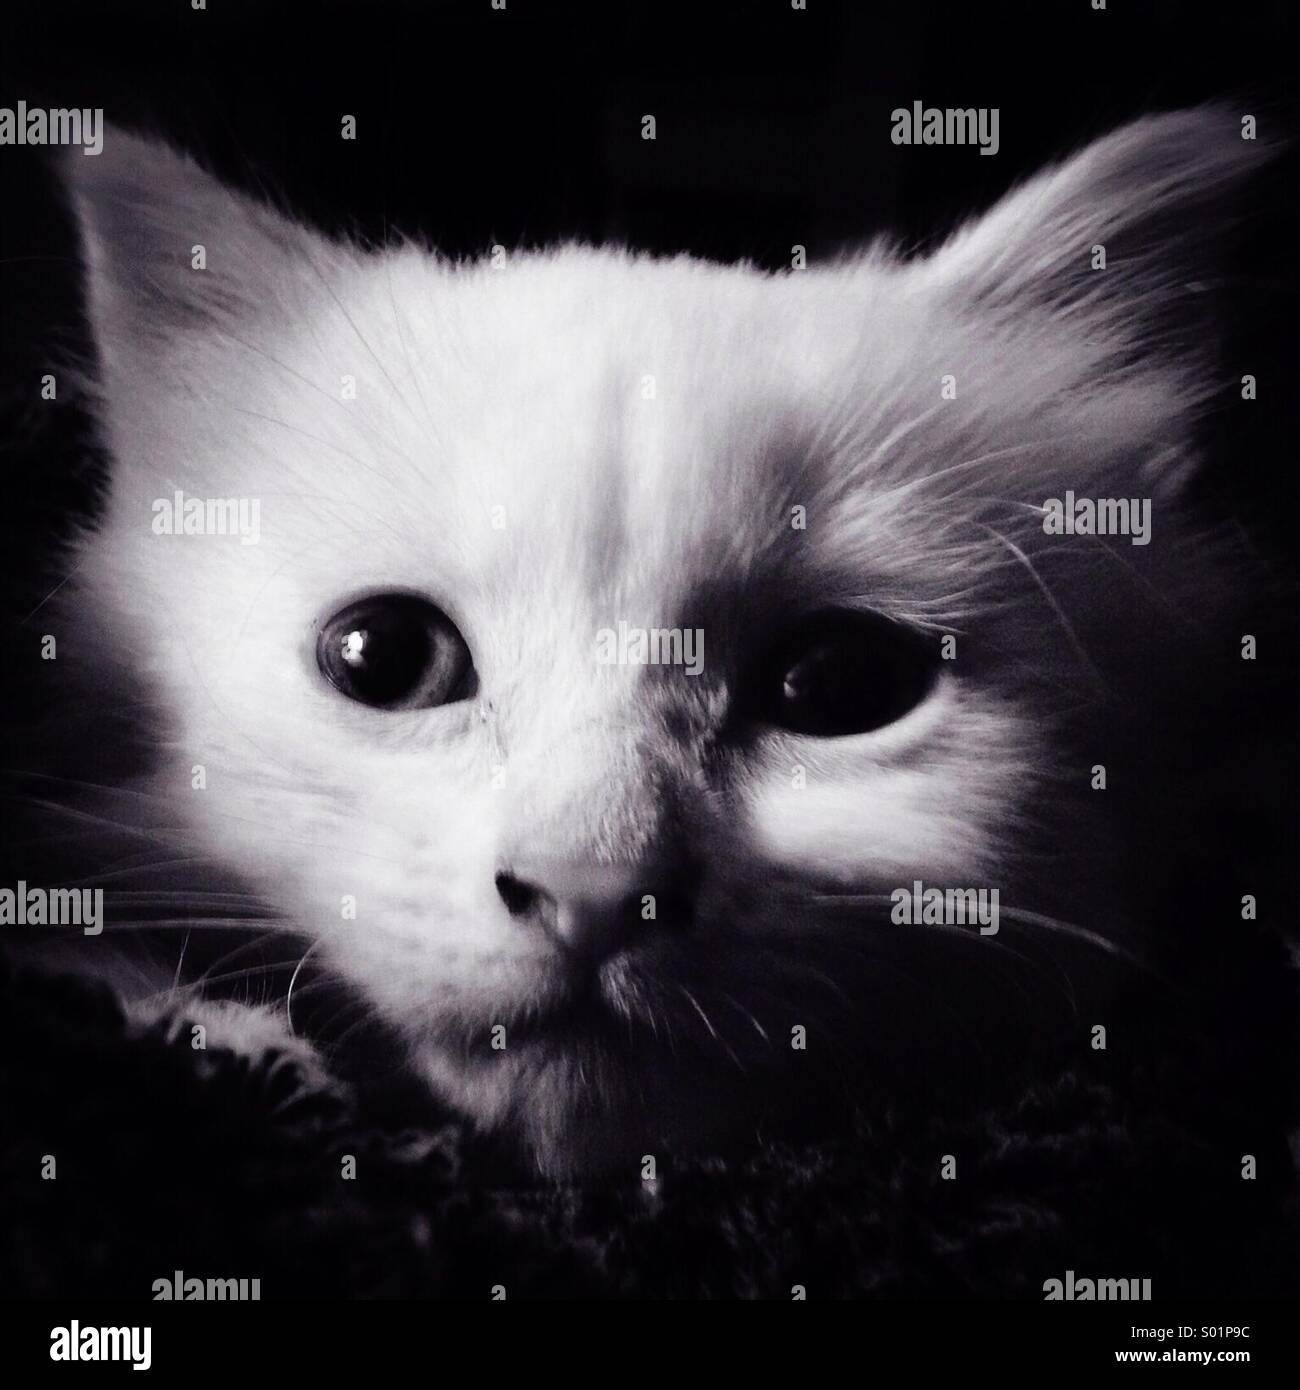 White Kitten - Stock Image